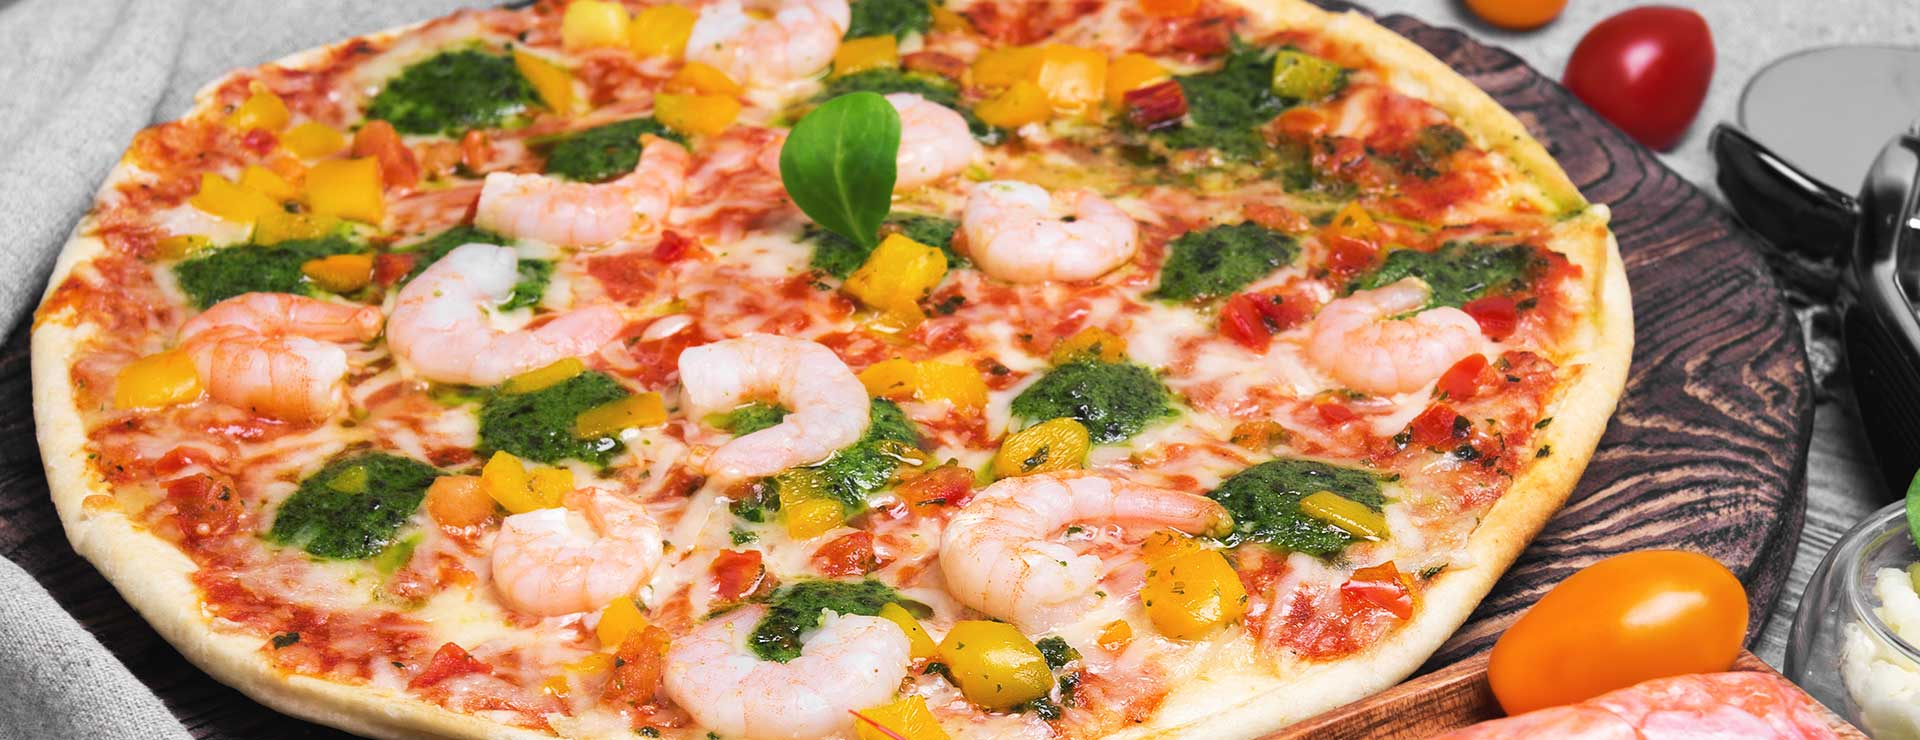 pizza with shrimp toppings